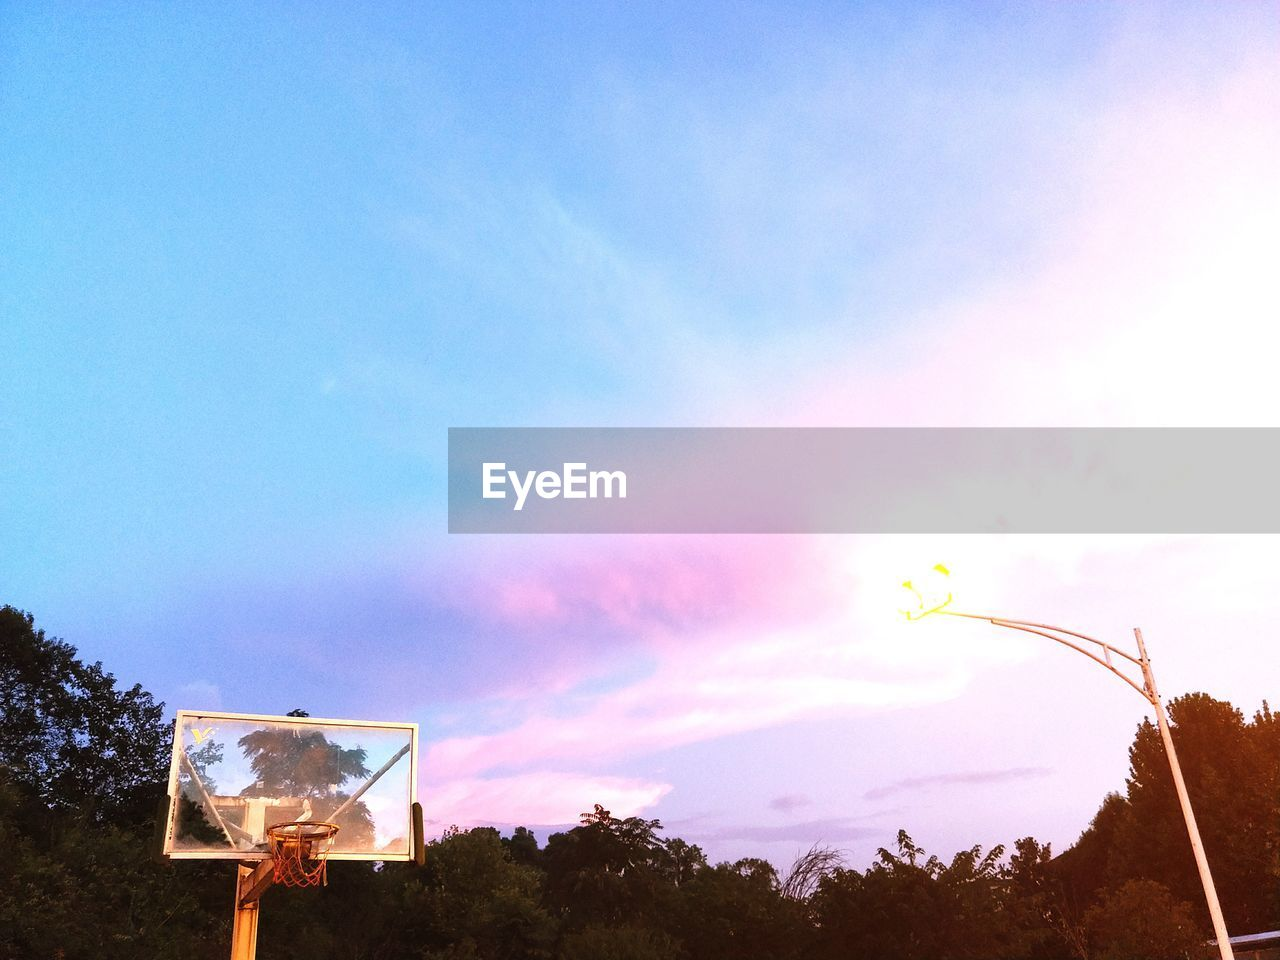 sky, tree, nature, basketball hoop, low angle view, outdoors, sunset, no people, beauty in nature, day, basketball - sport